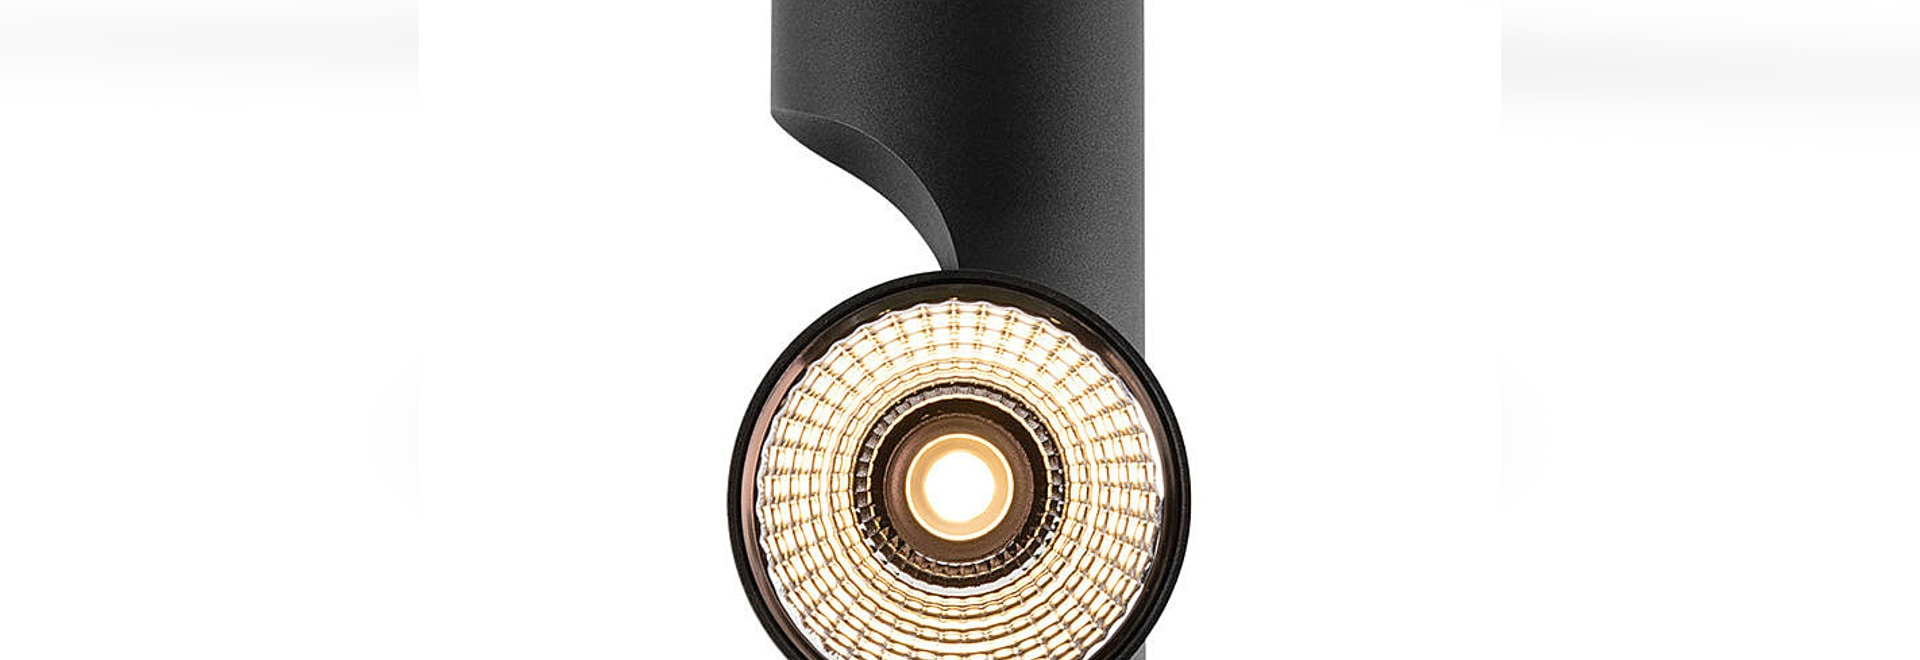 Yin and Yang by Modular Lighting Instruments